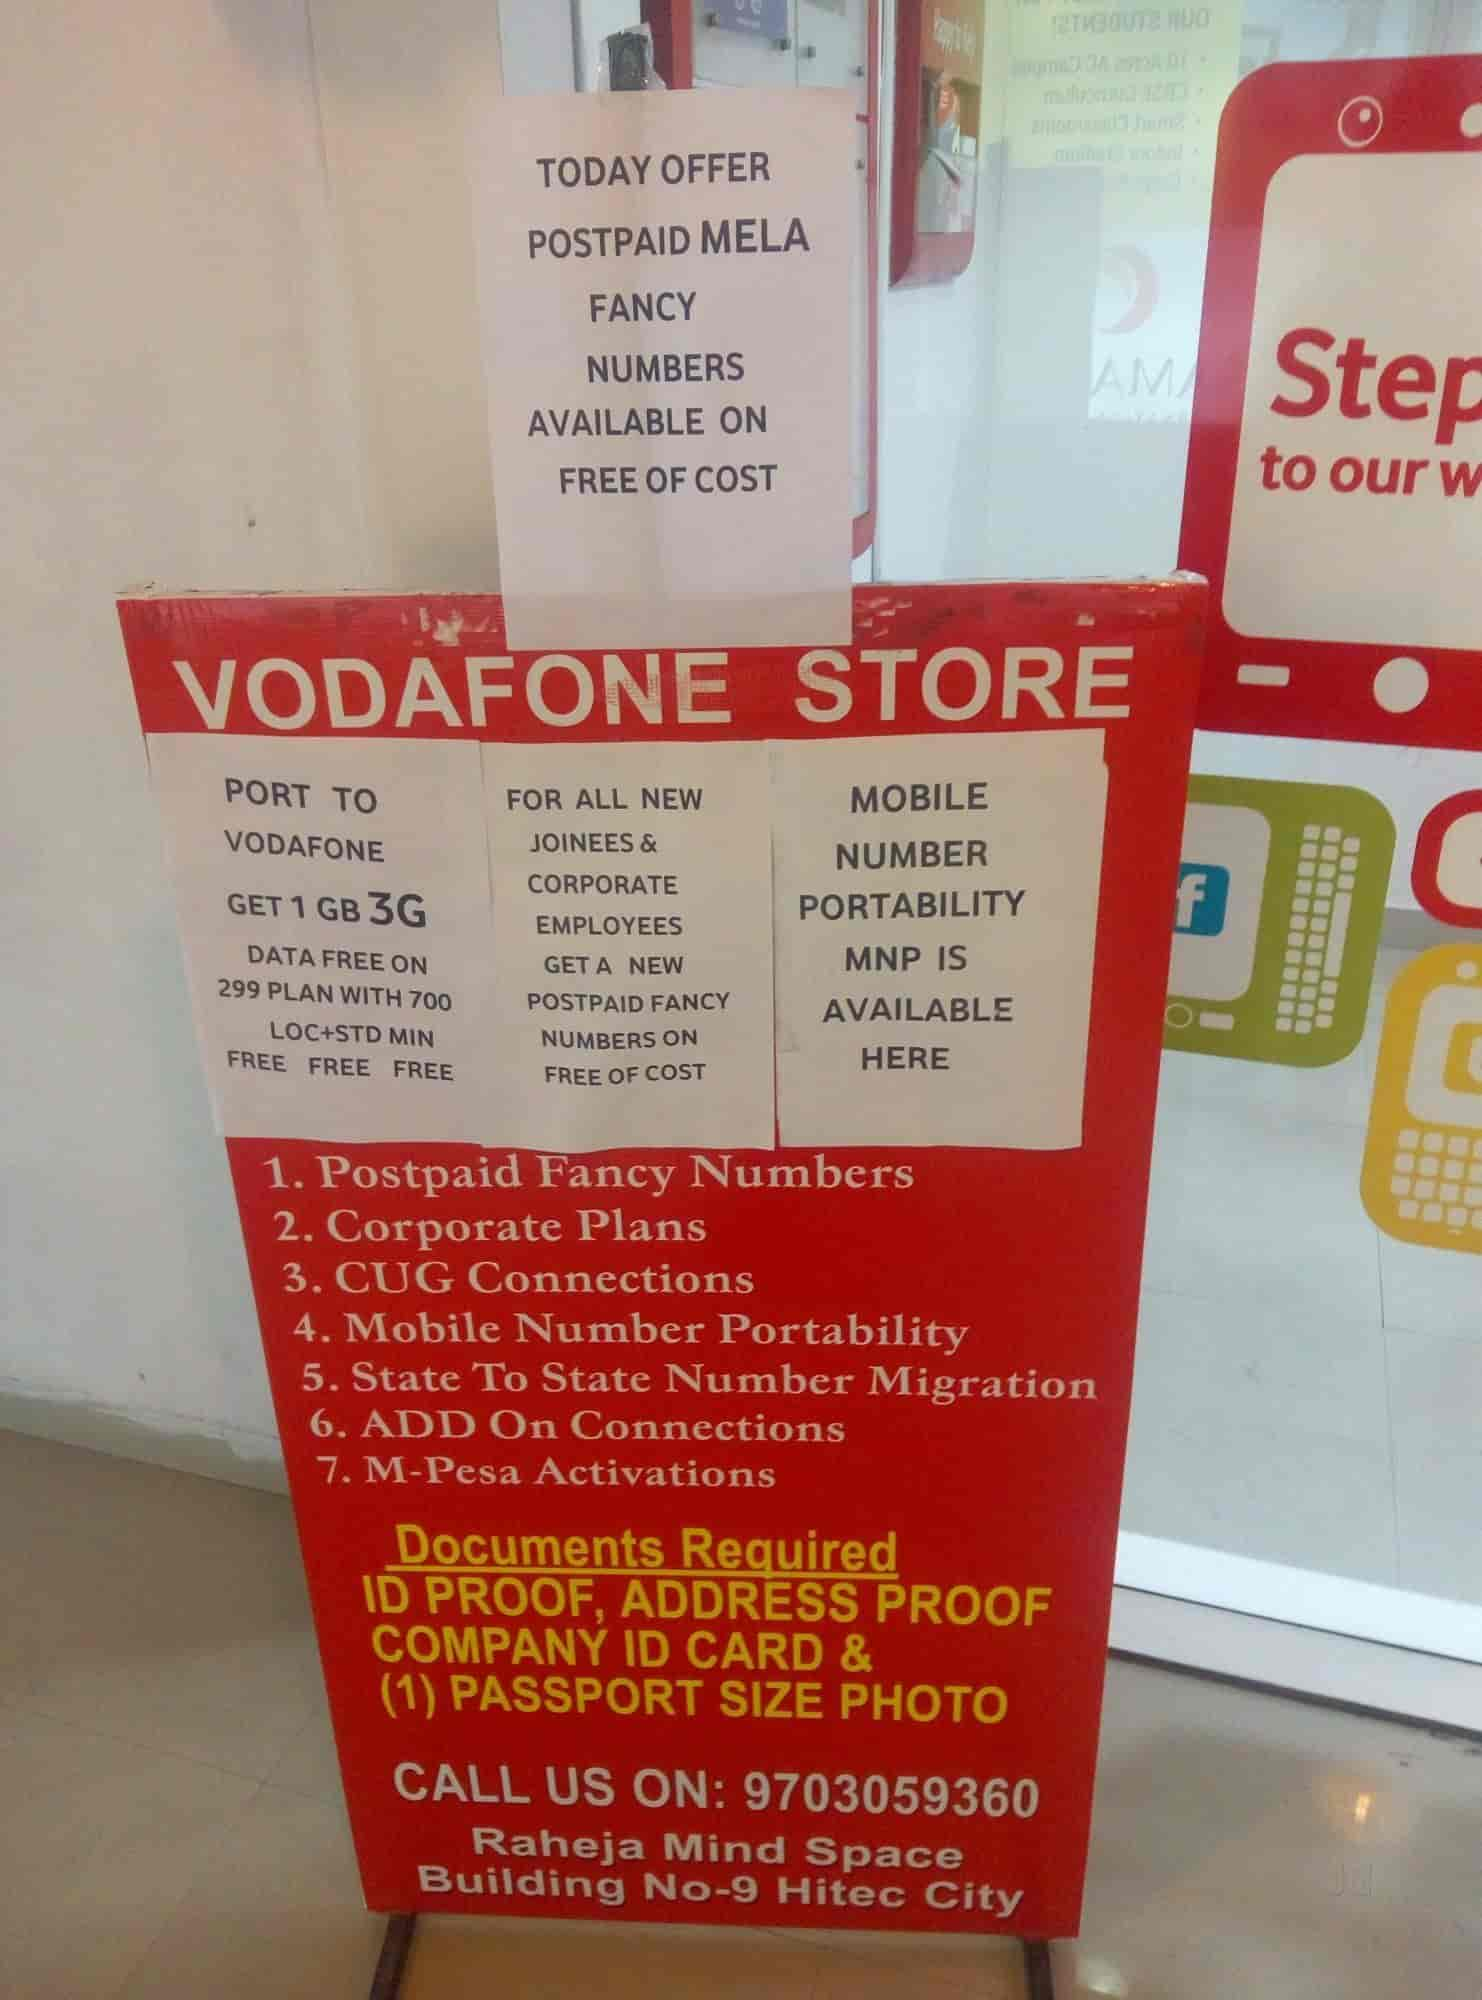 Vodafone Store, Hitech City - Mobile Phone Simcard Dealers